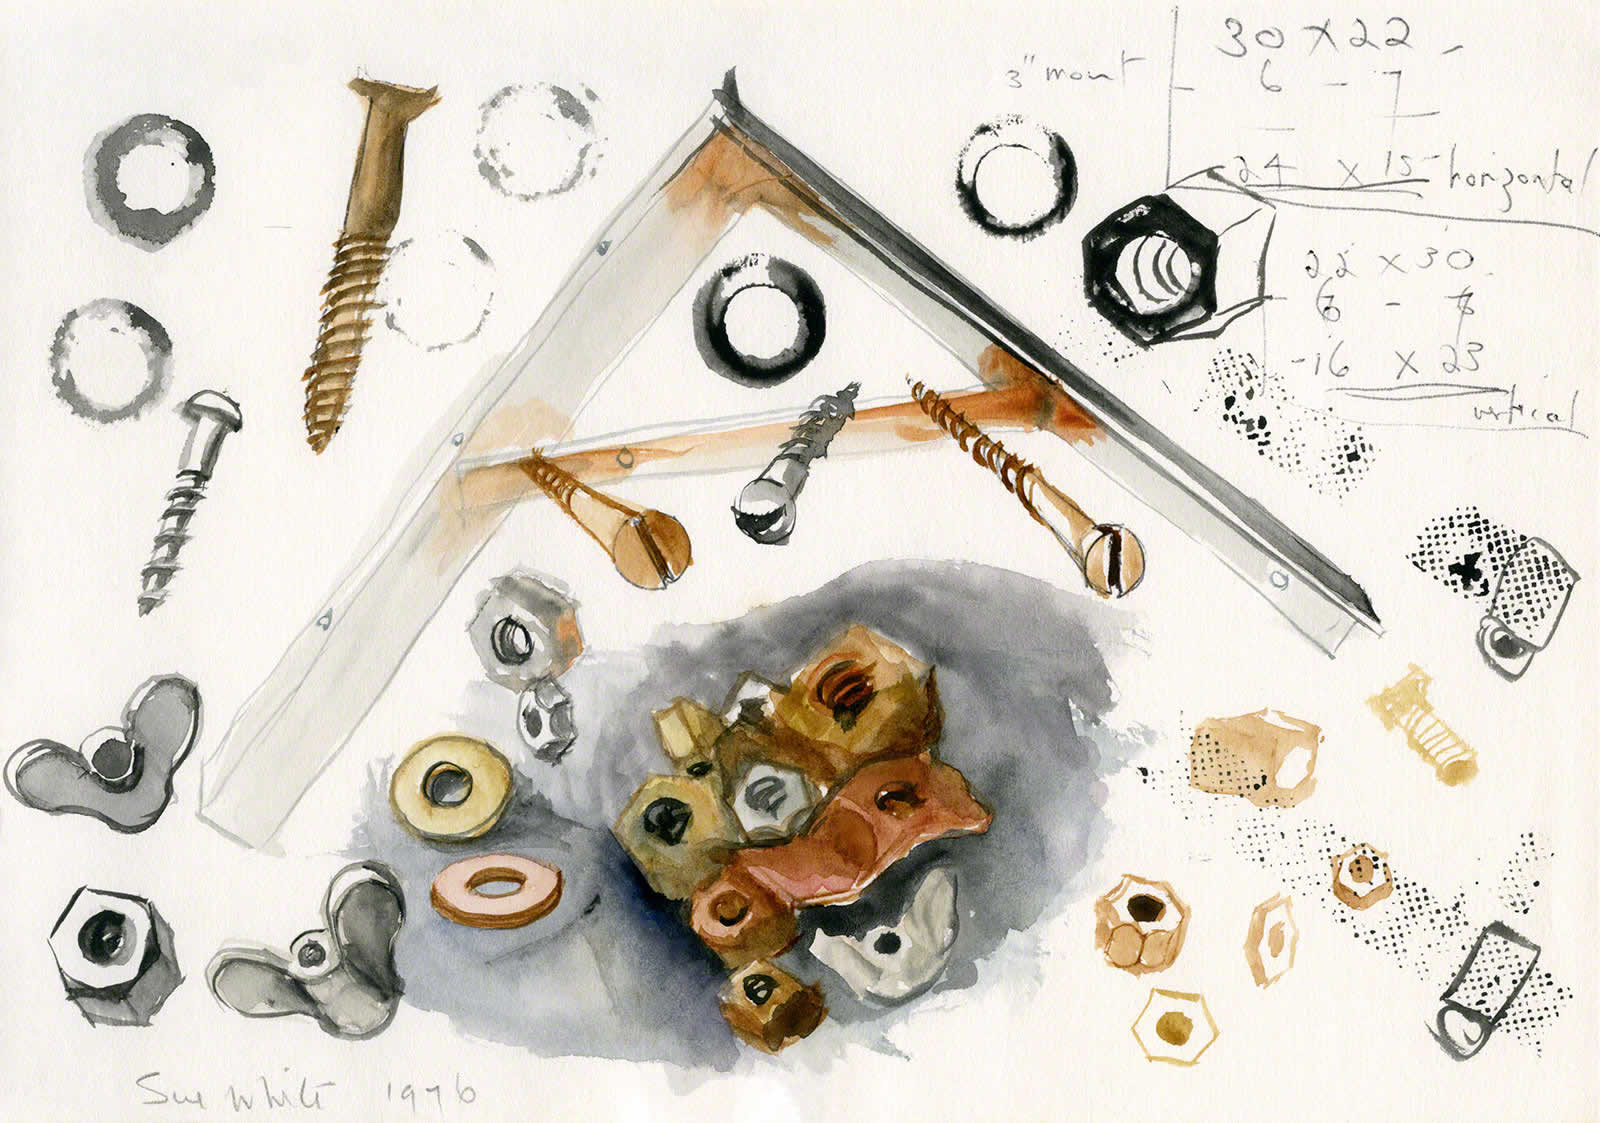 Nuts and Bolts, Washers, Screws - study for 'Retired Mechanic' by Susan Dorothea White